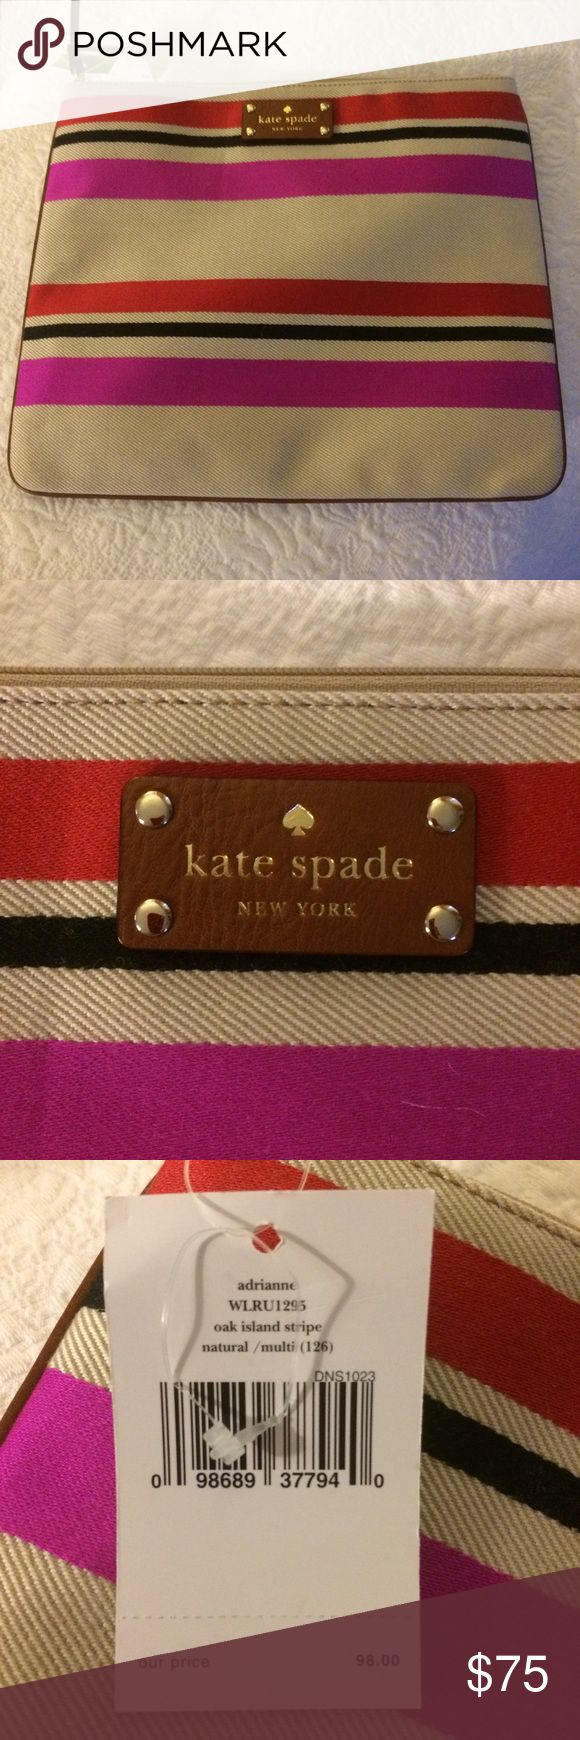 "Beautiful Kate spade canvas striped pouch Great pouch with hot pink stripes on a neutral canvas background.  Leather Kate spade ""license plate.""  Two little pockets on inside, sewn into one side (like for a cell phone or business card).  10 inches high, 12 wide! kate spade Bags"